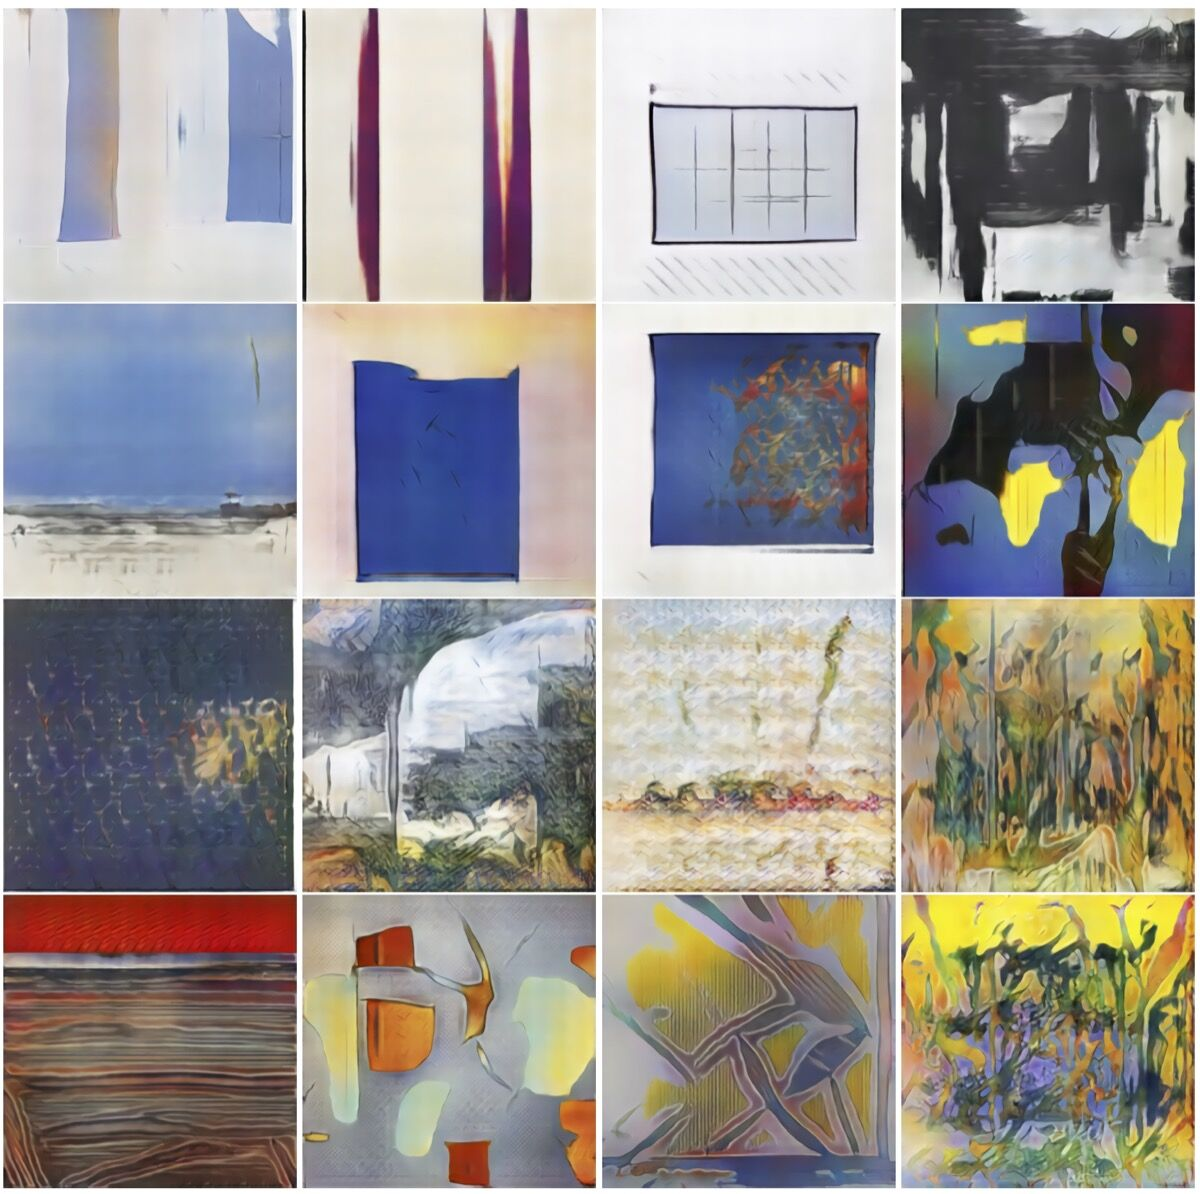 """Example of images generated by CAN, included in """"CAN: Creative Adversarial Networks Generating 'Art' by Learning About Styles and Deviating from Style Norms."""" Courtesy of Ahmed Elgammal."""